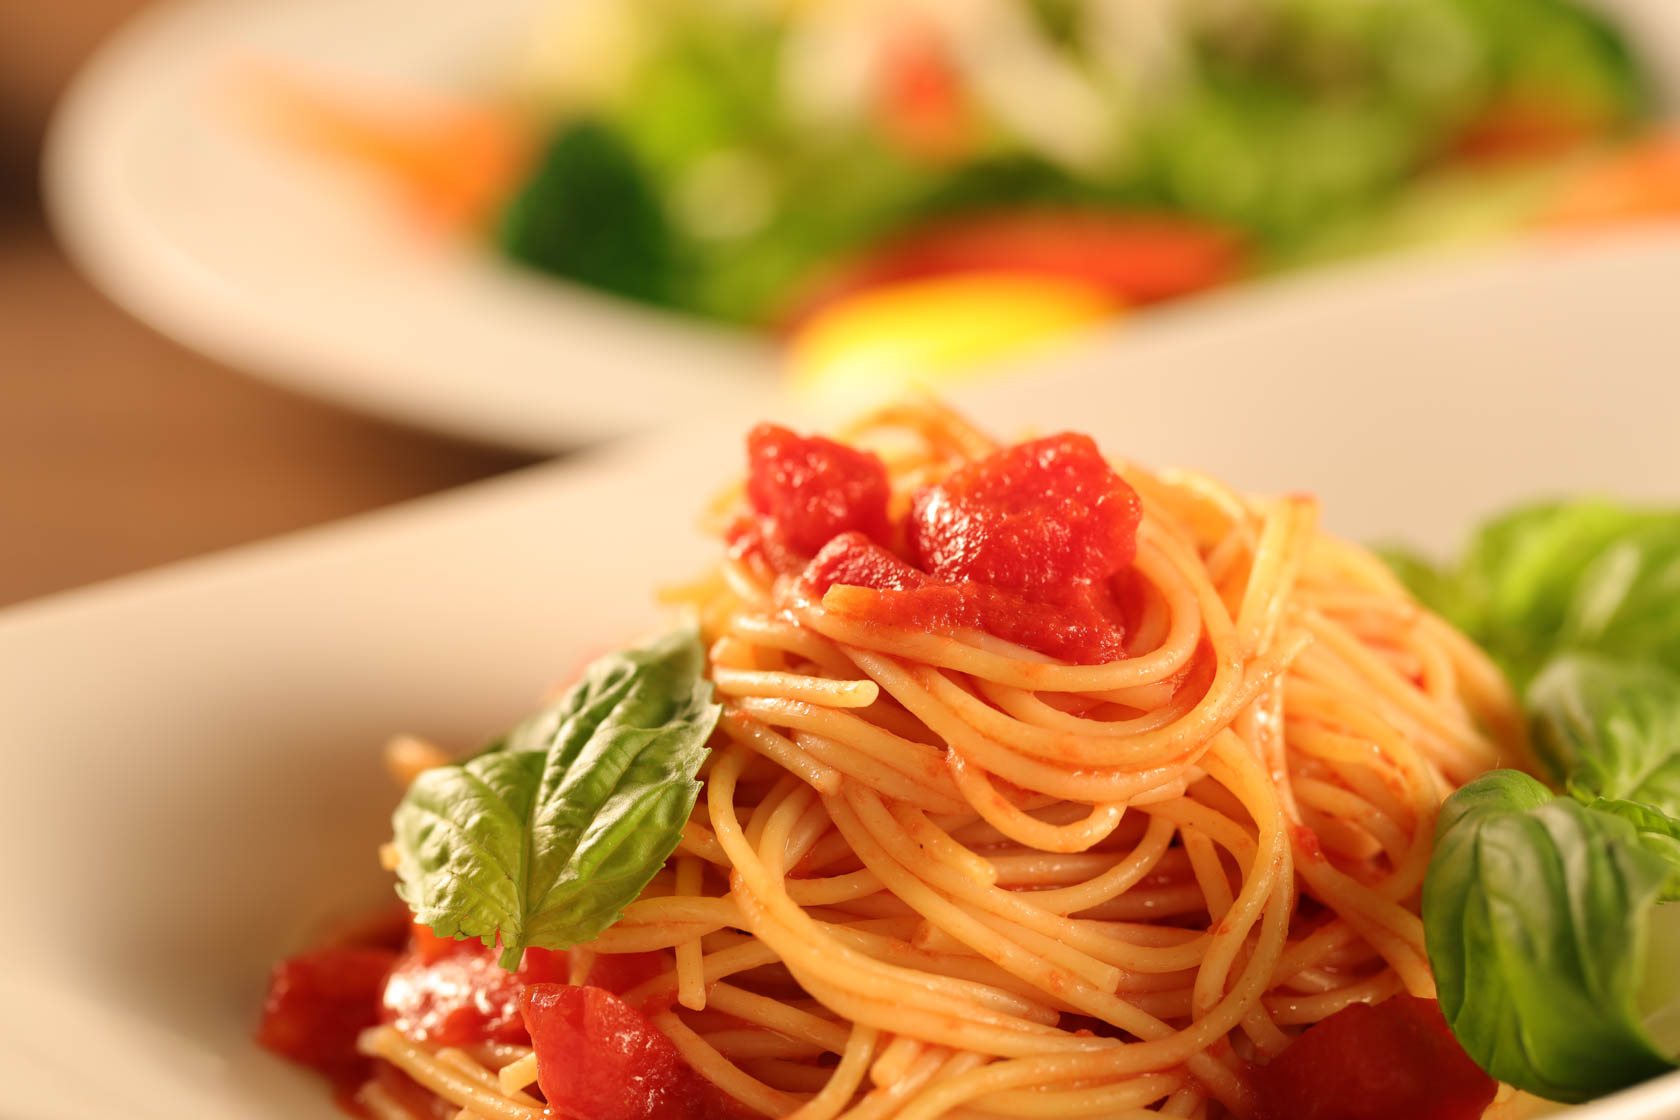 Spaghetti with tomato taken with Canon EOS 5DS DSLR camera